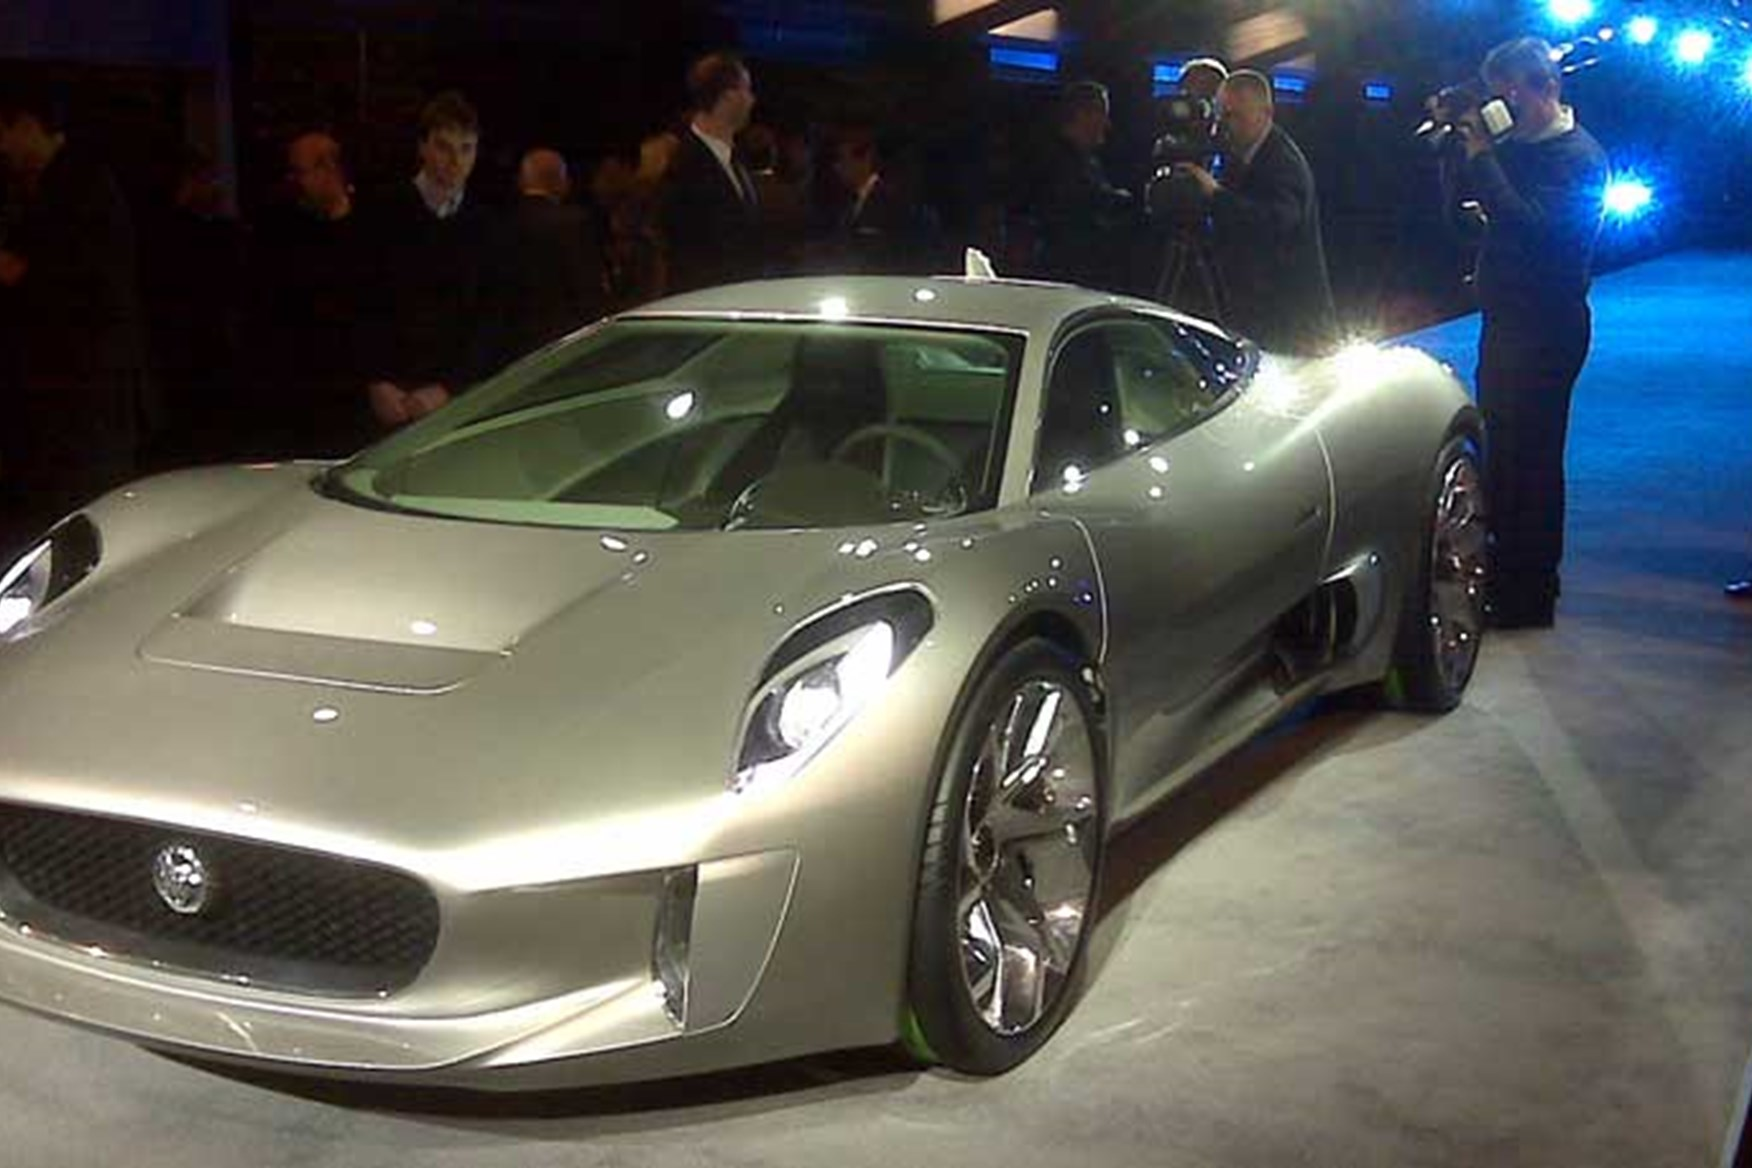 ... The Jaguar C X75 Is Mobbed At The Musée Rodin. The Hacks At The Preview  Approve ...